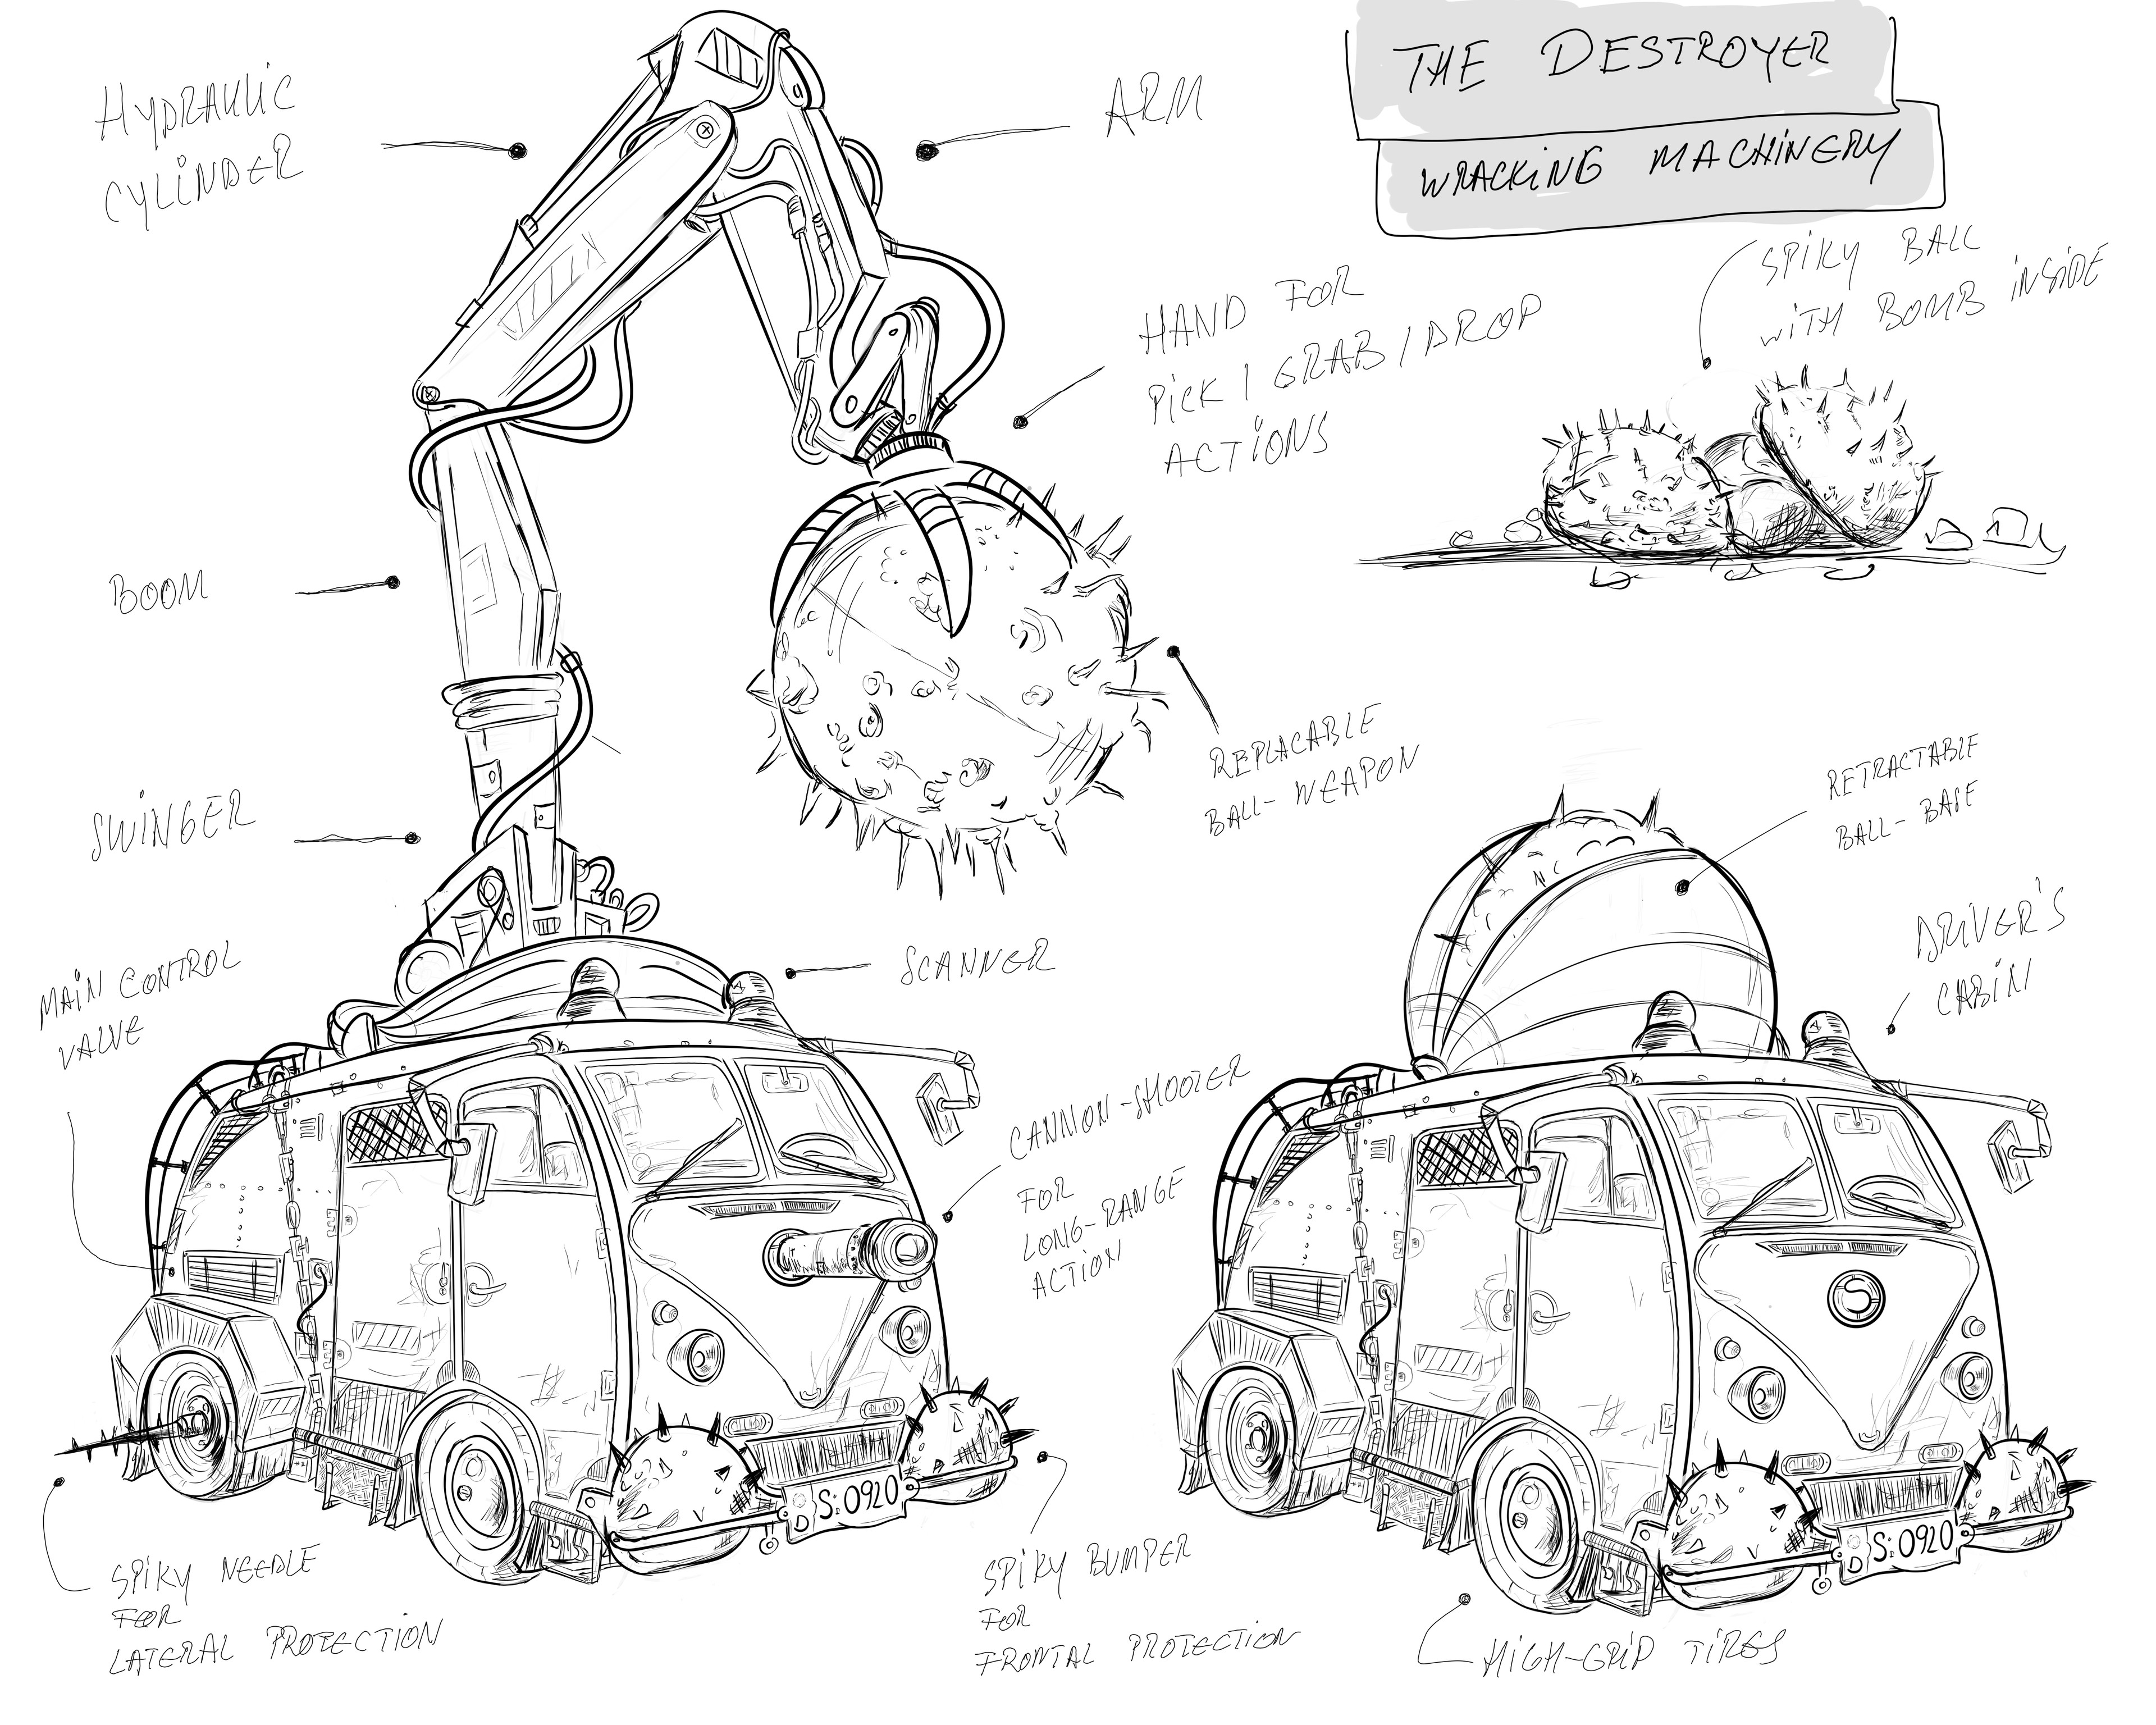 Final concept of the Destroyer